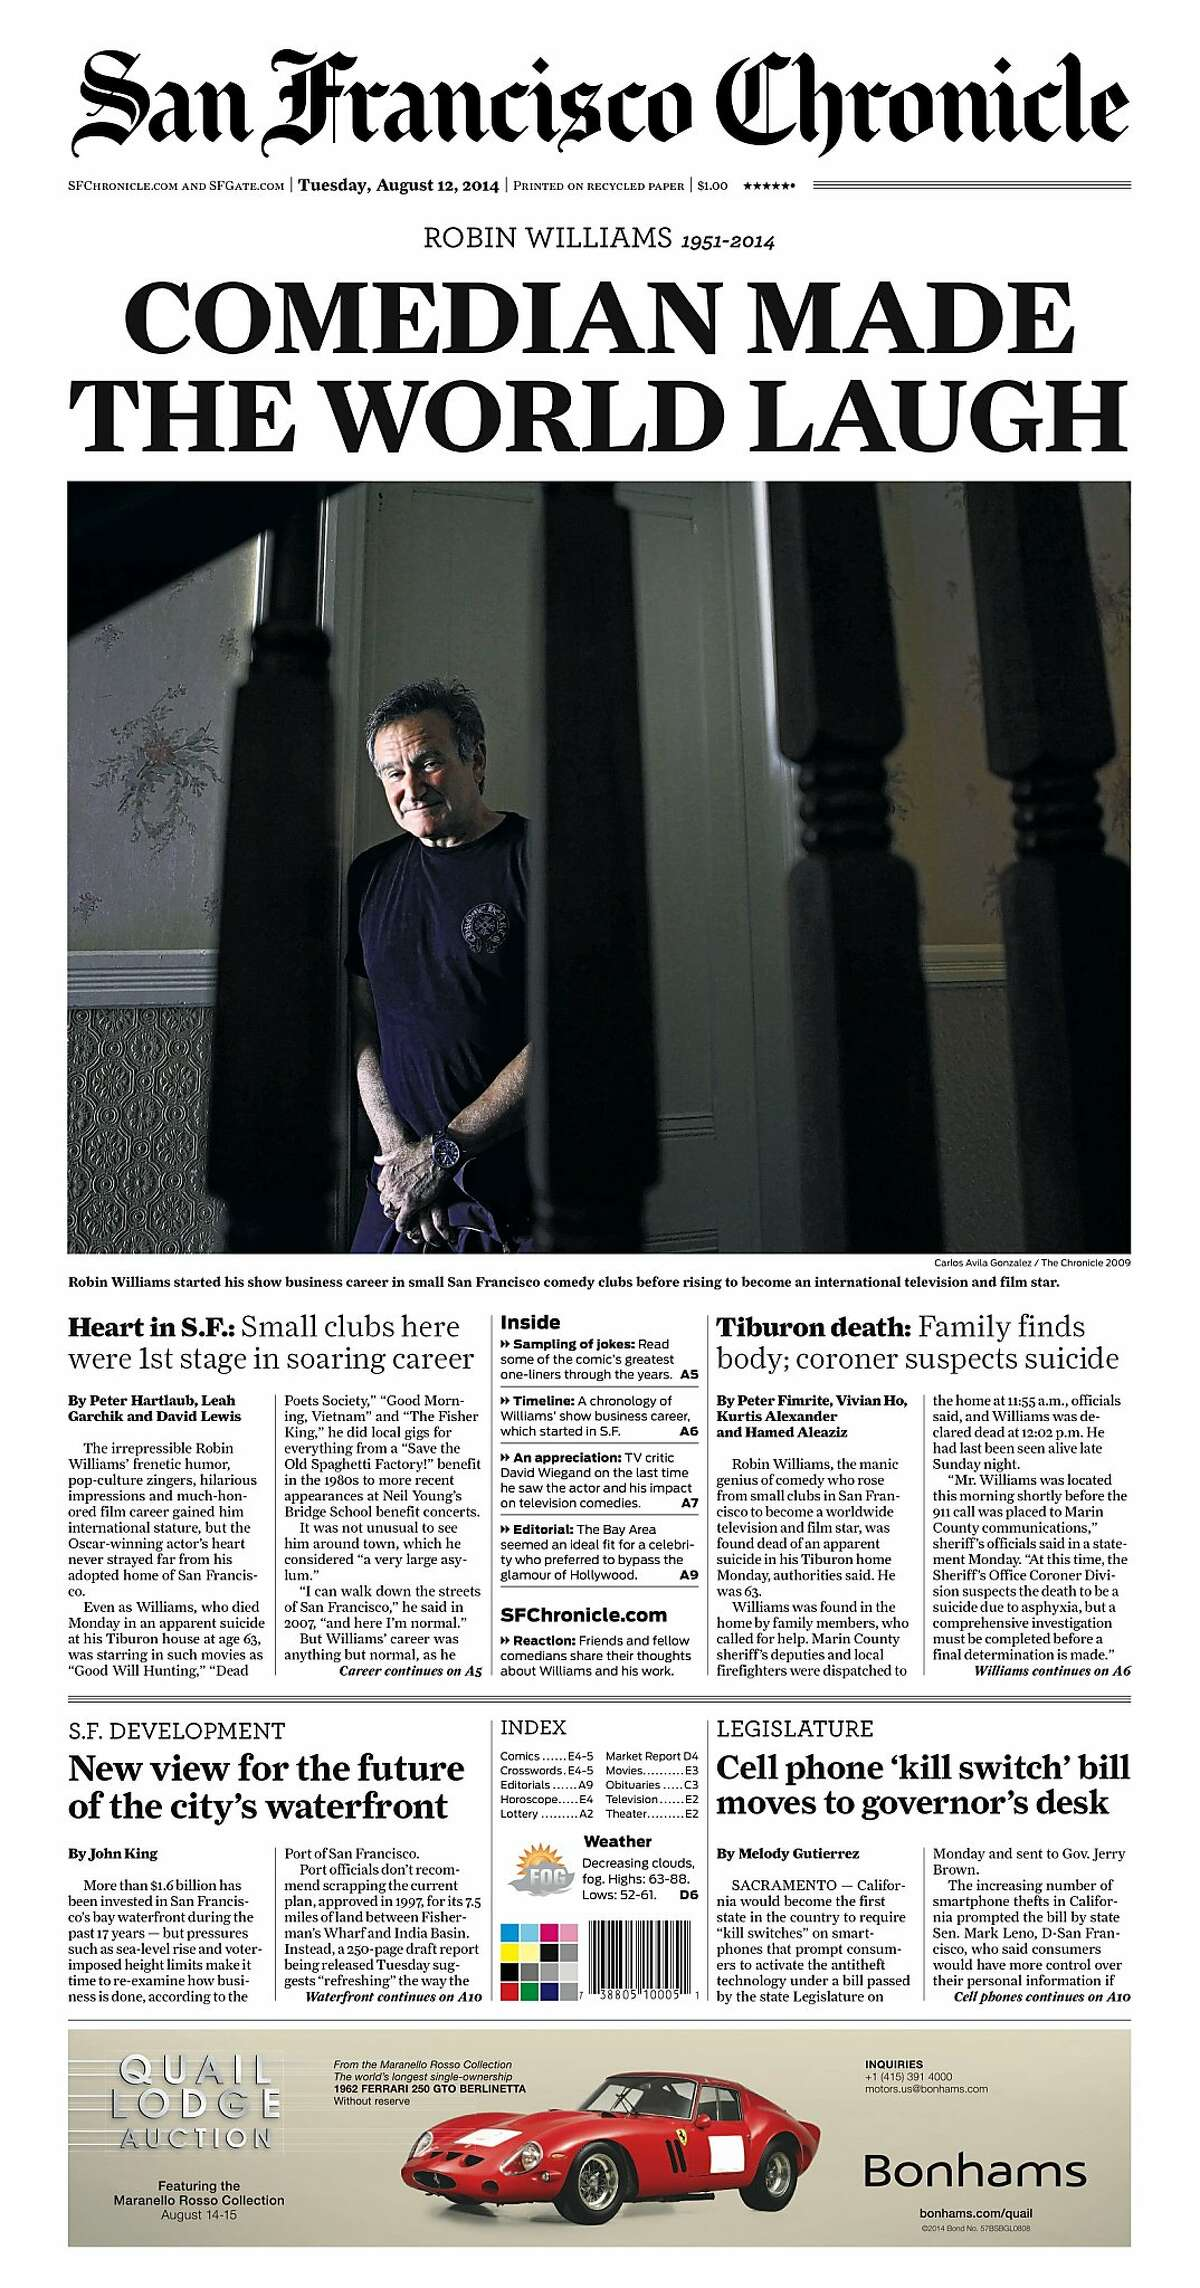 Historic Chronicle Front Page August 12, 2014 Robin Williams dies Chron365, Chroncover